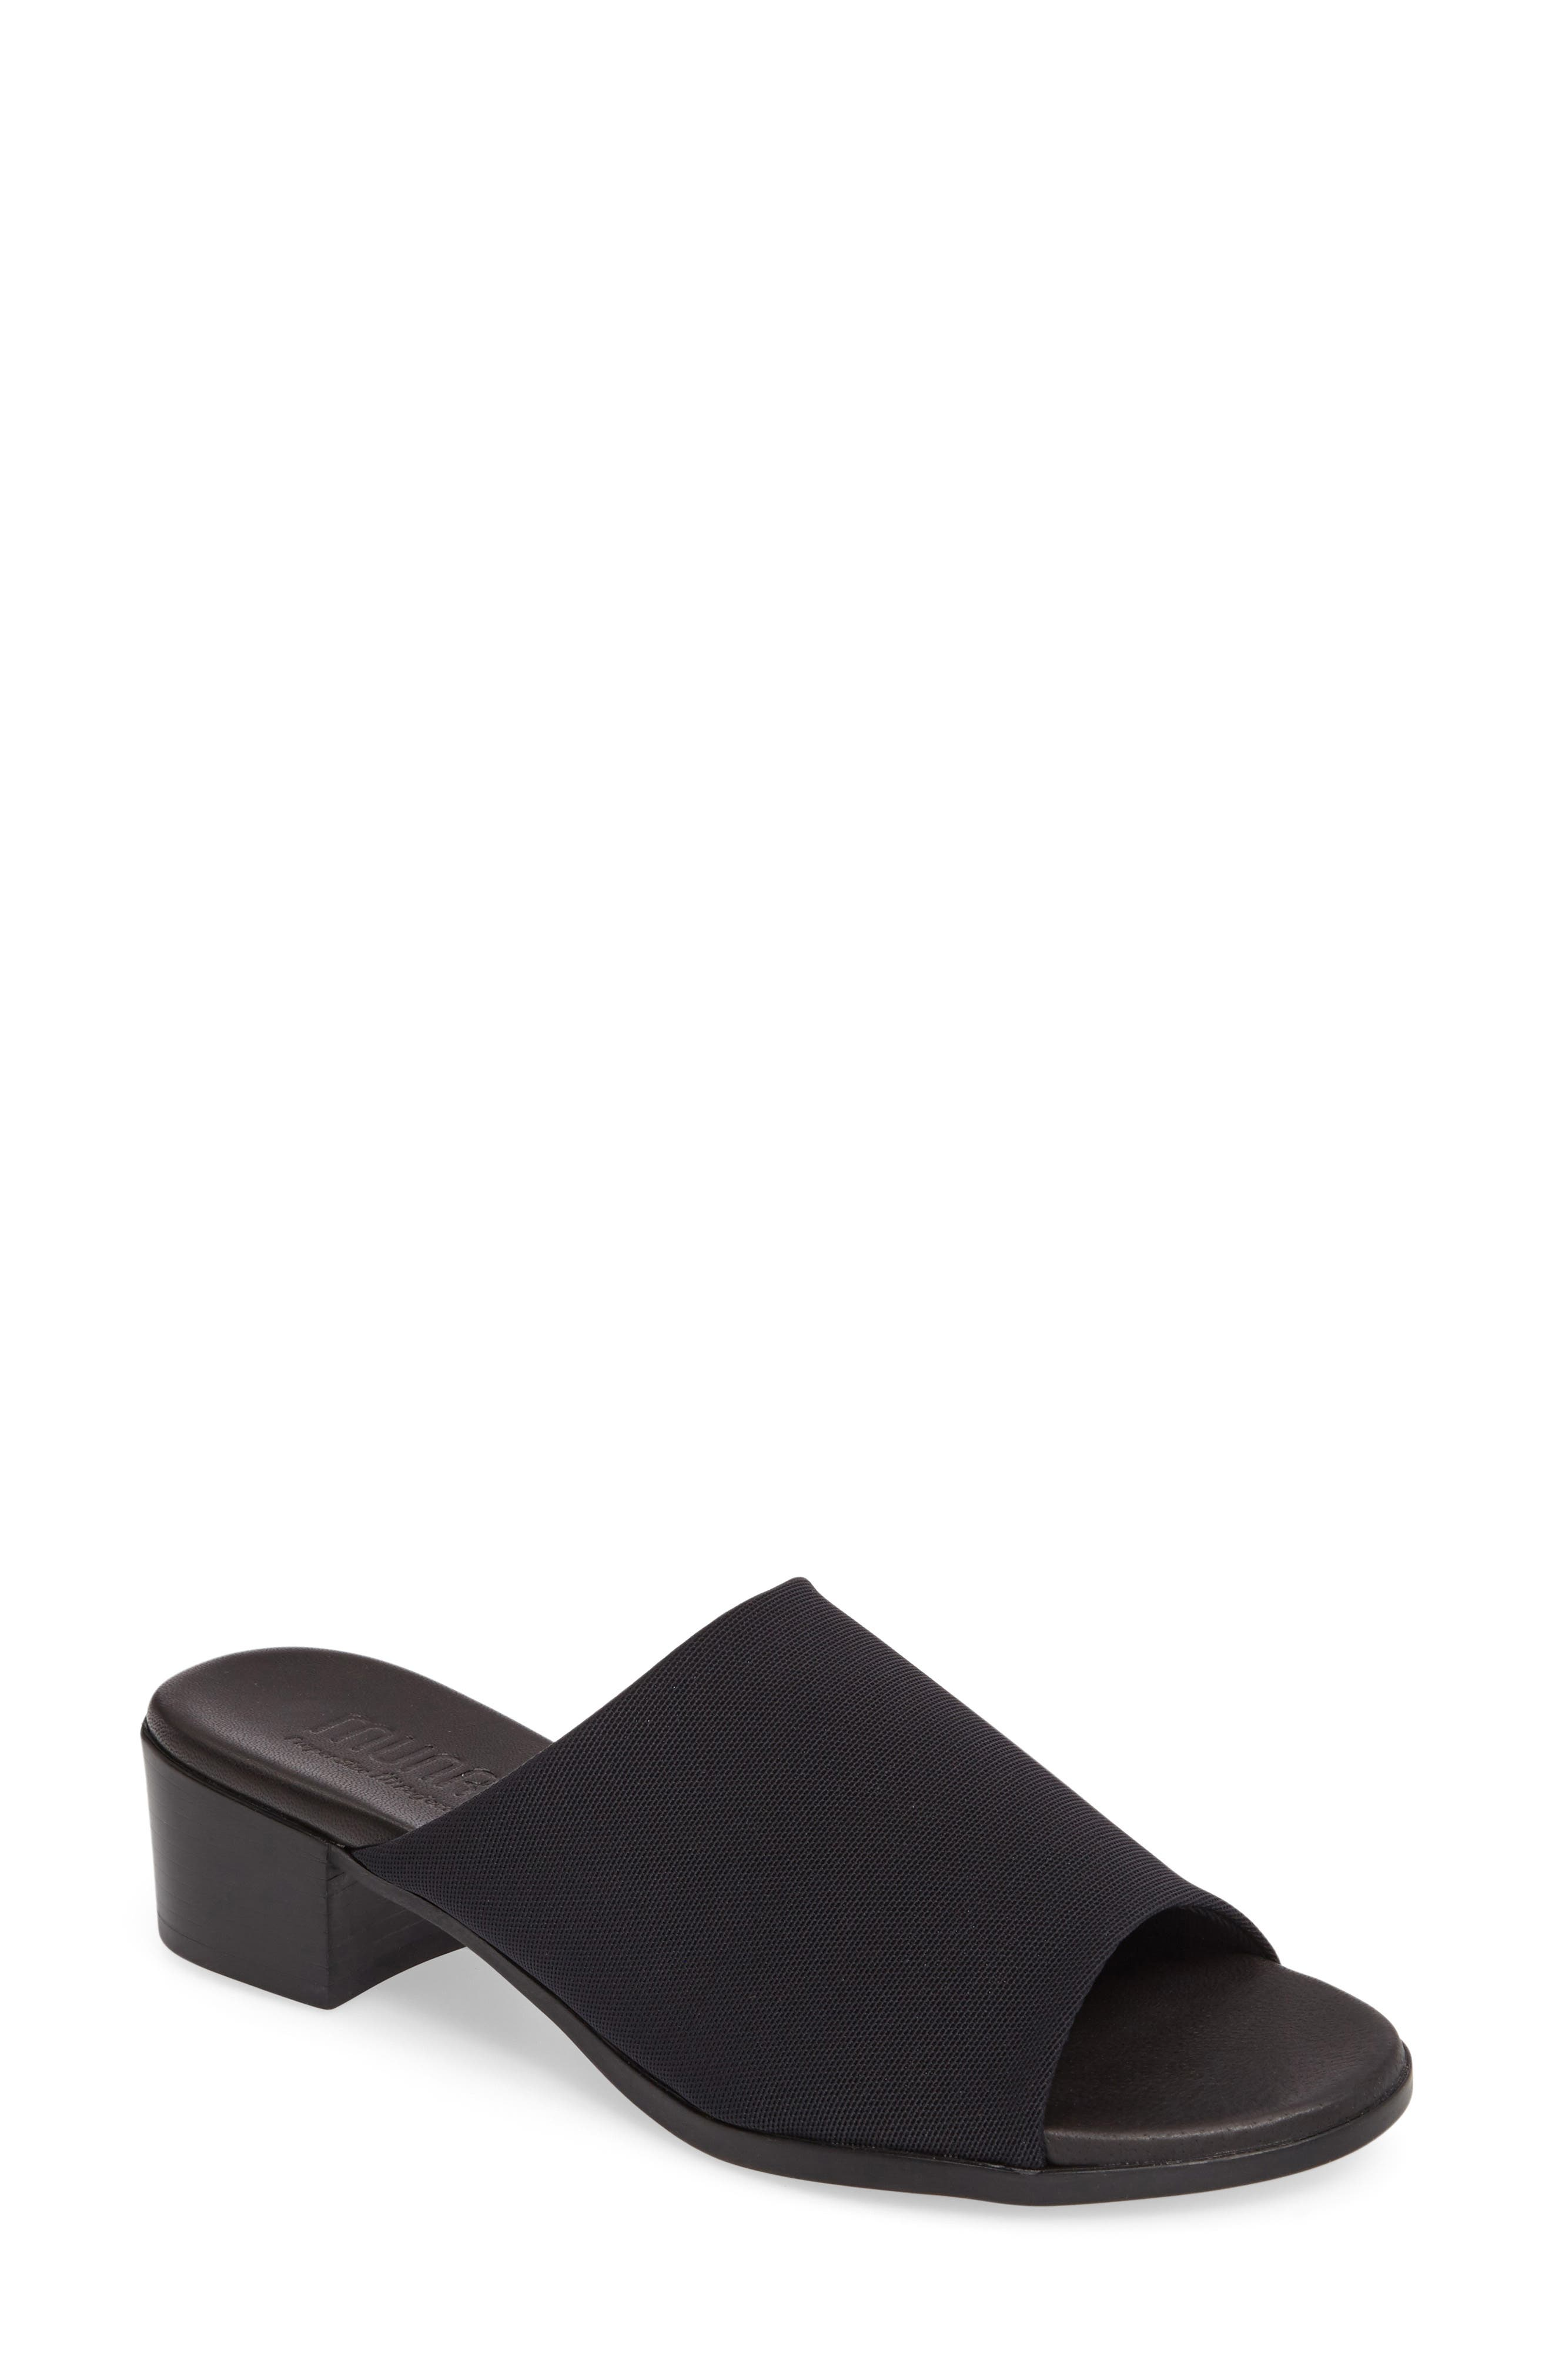 Beth Slide Sandal,                         Main,                         color, Black Fabric